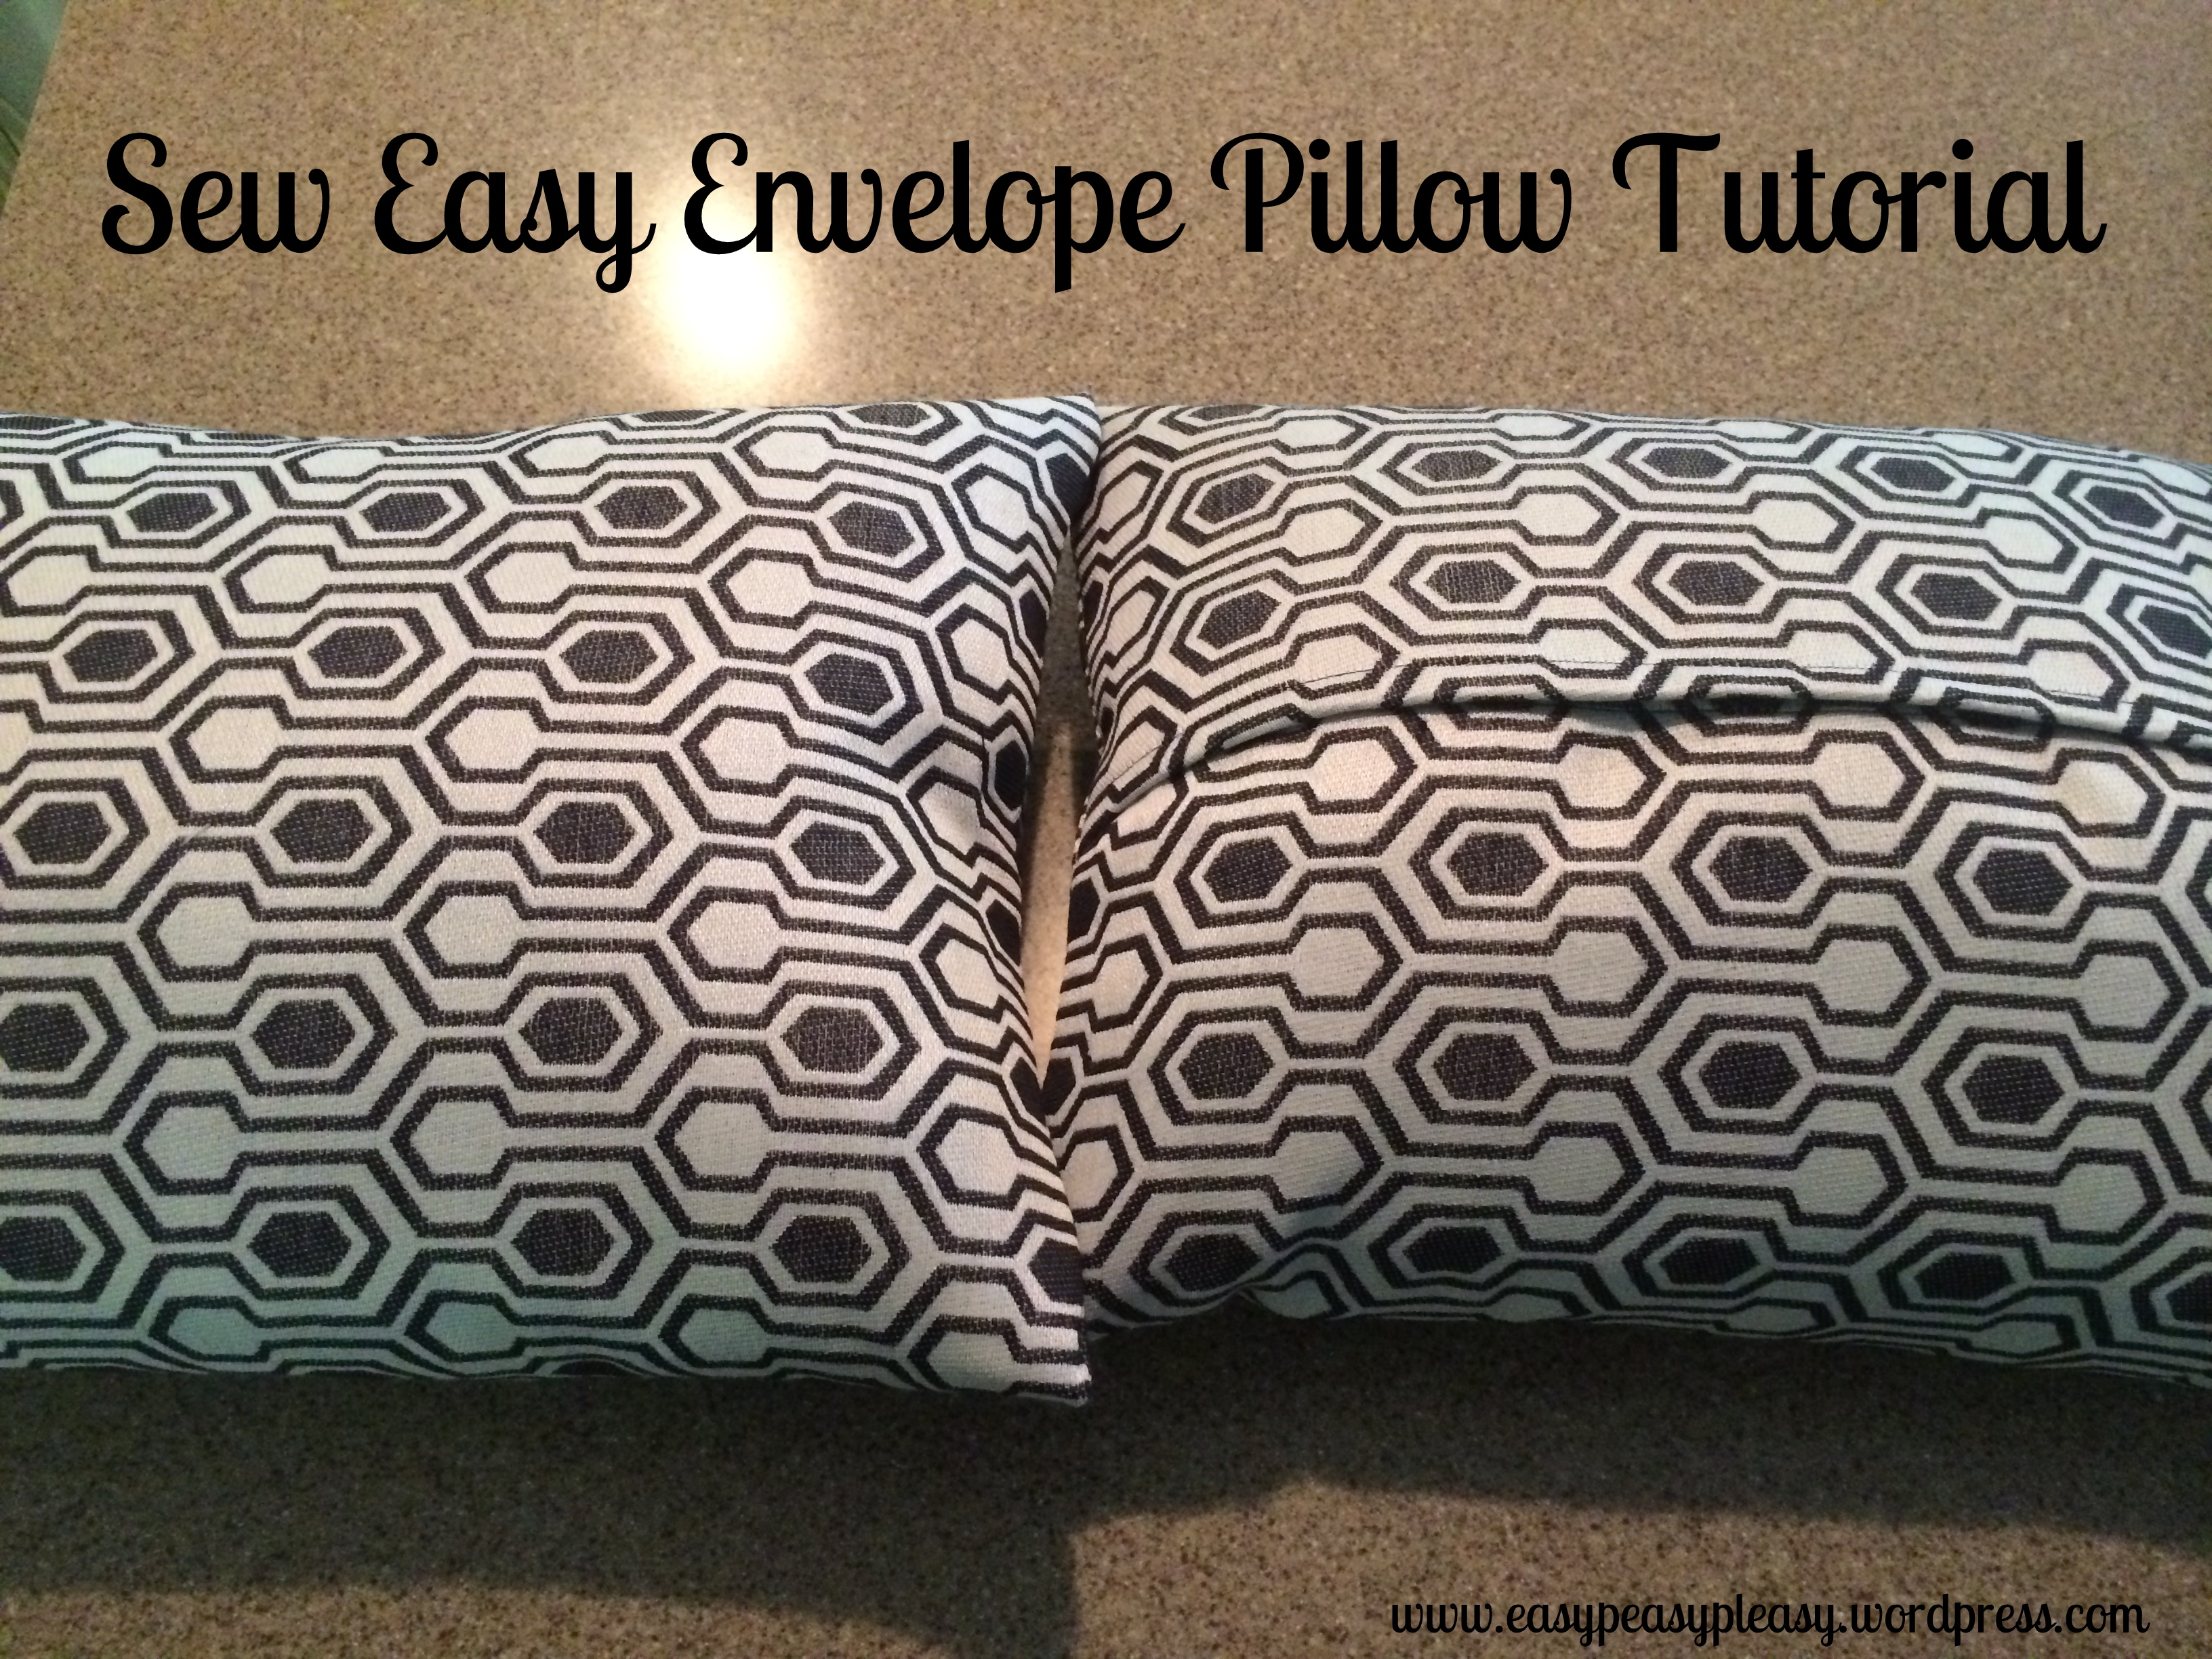 Sew Easy Envelope Pillow Tutorial at https://easypeasypleasy.com-001